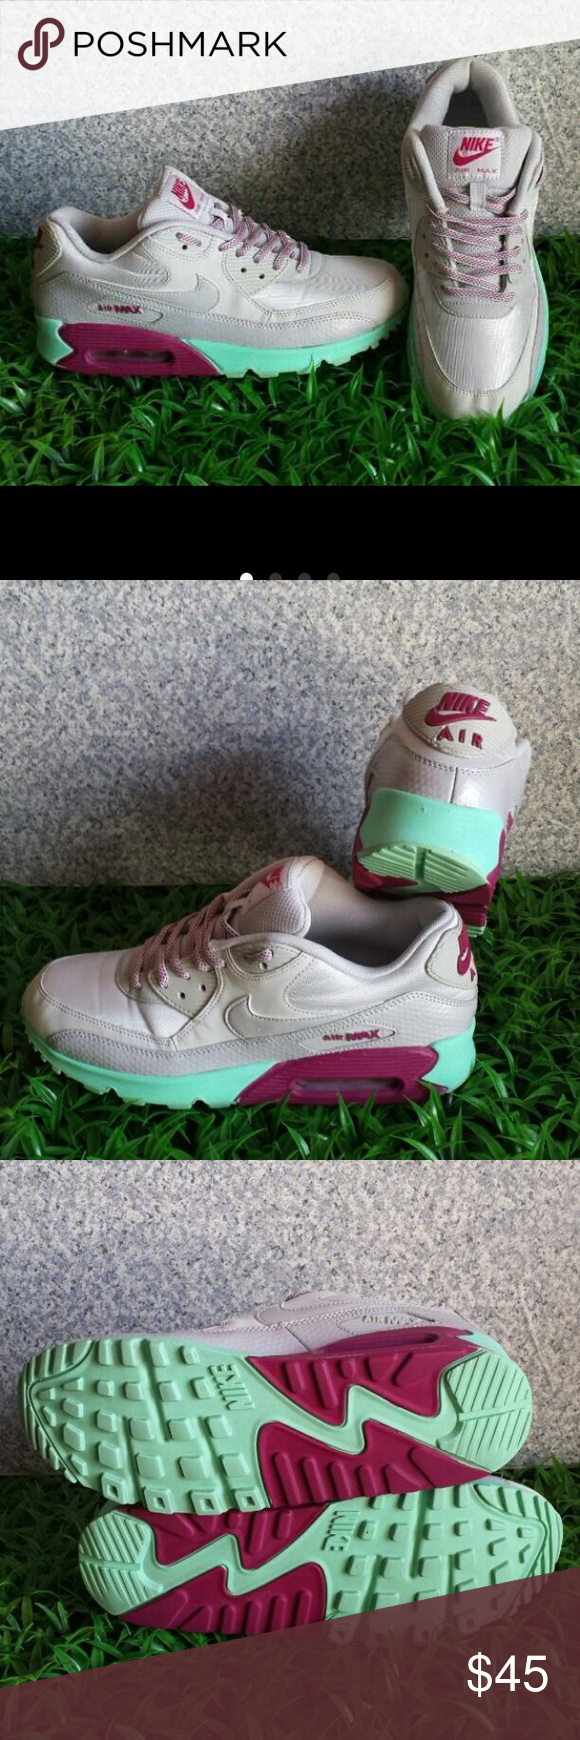 Nike Air Max Nike Air Max Size Woman 10 in good condition Nike Shoes Athletic Shoes